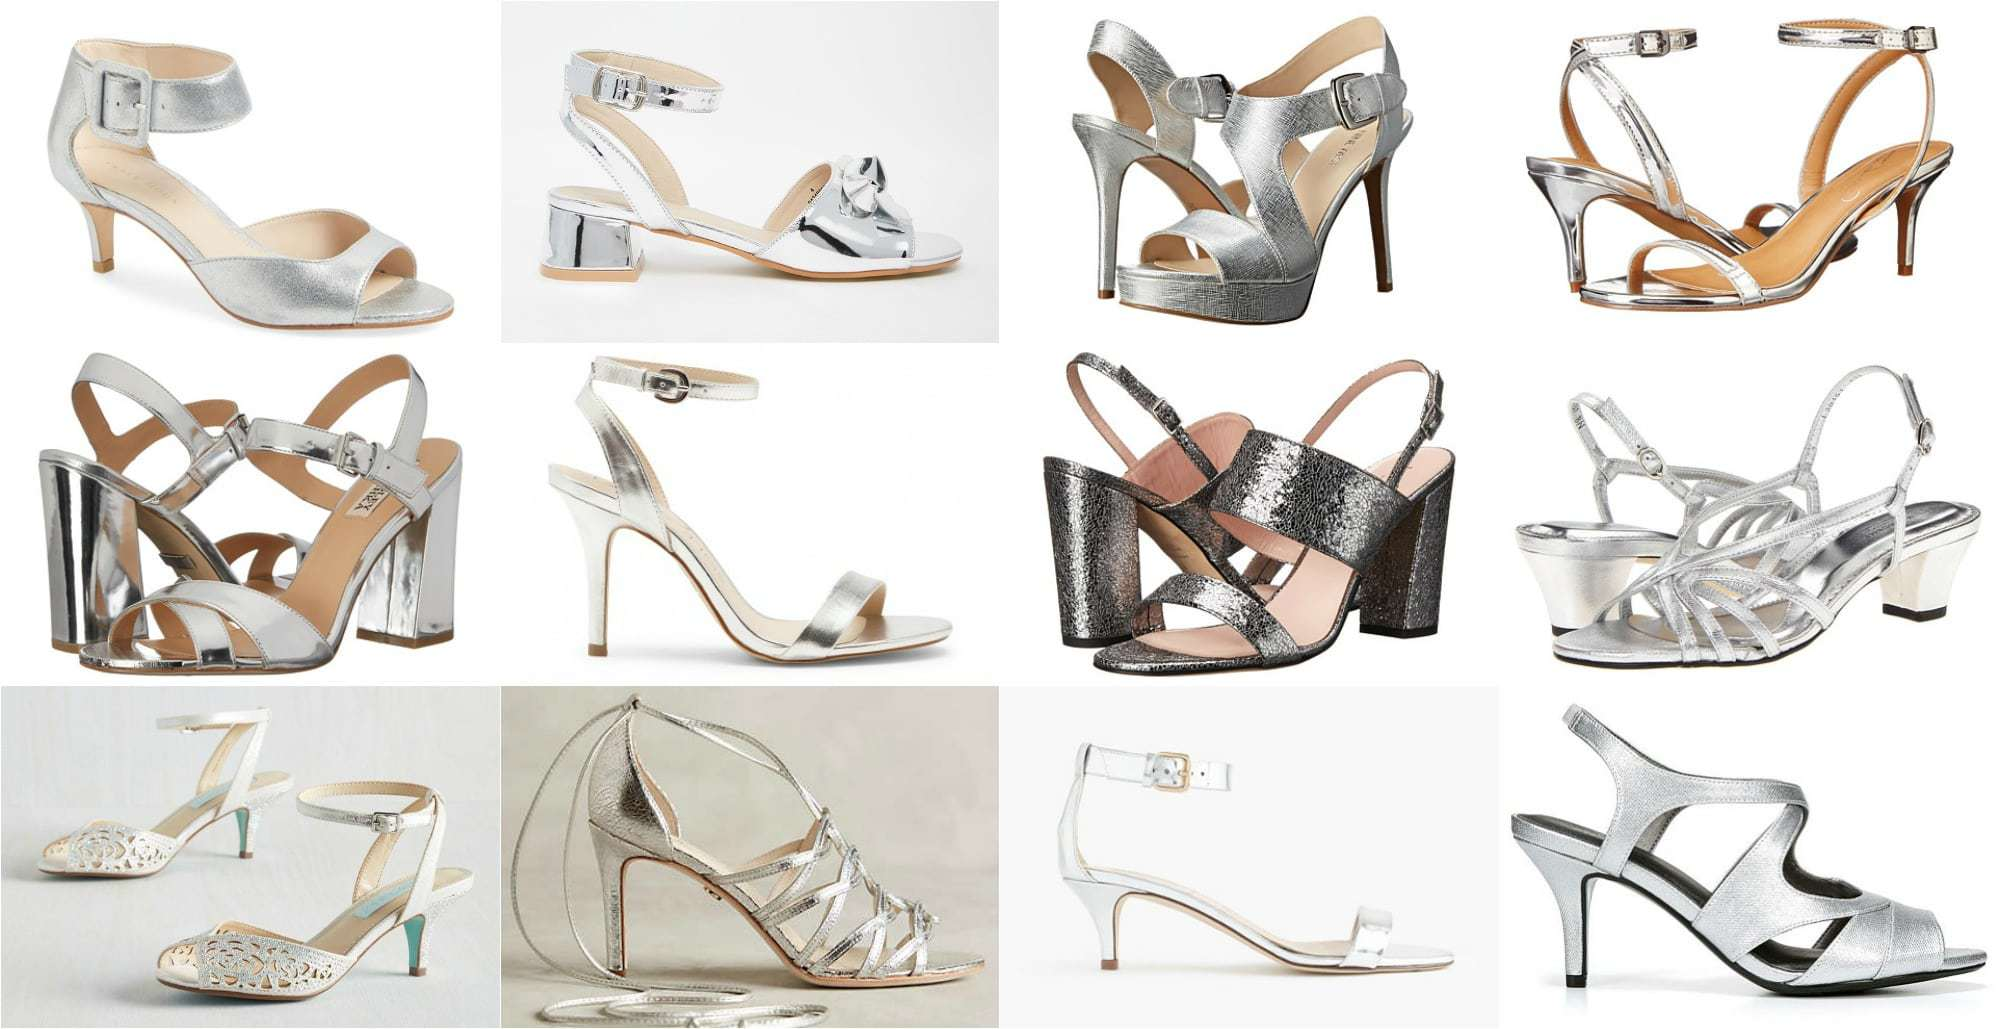 Wardrobe Oxygen - The best silver mirror strappy heels of all heights for 2016 fashion